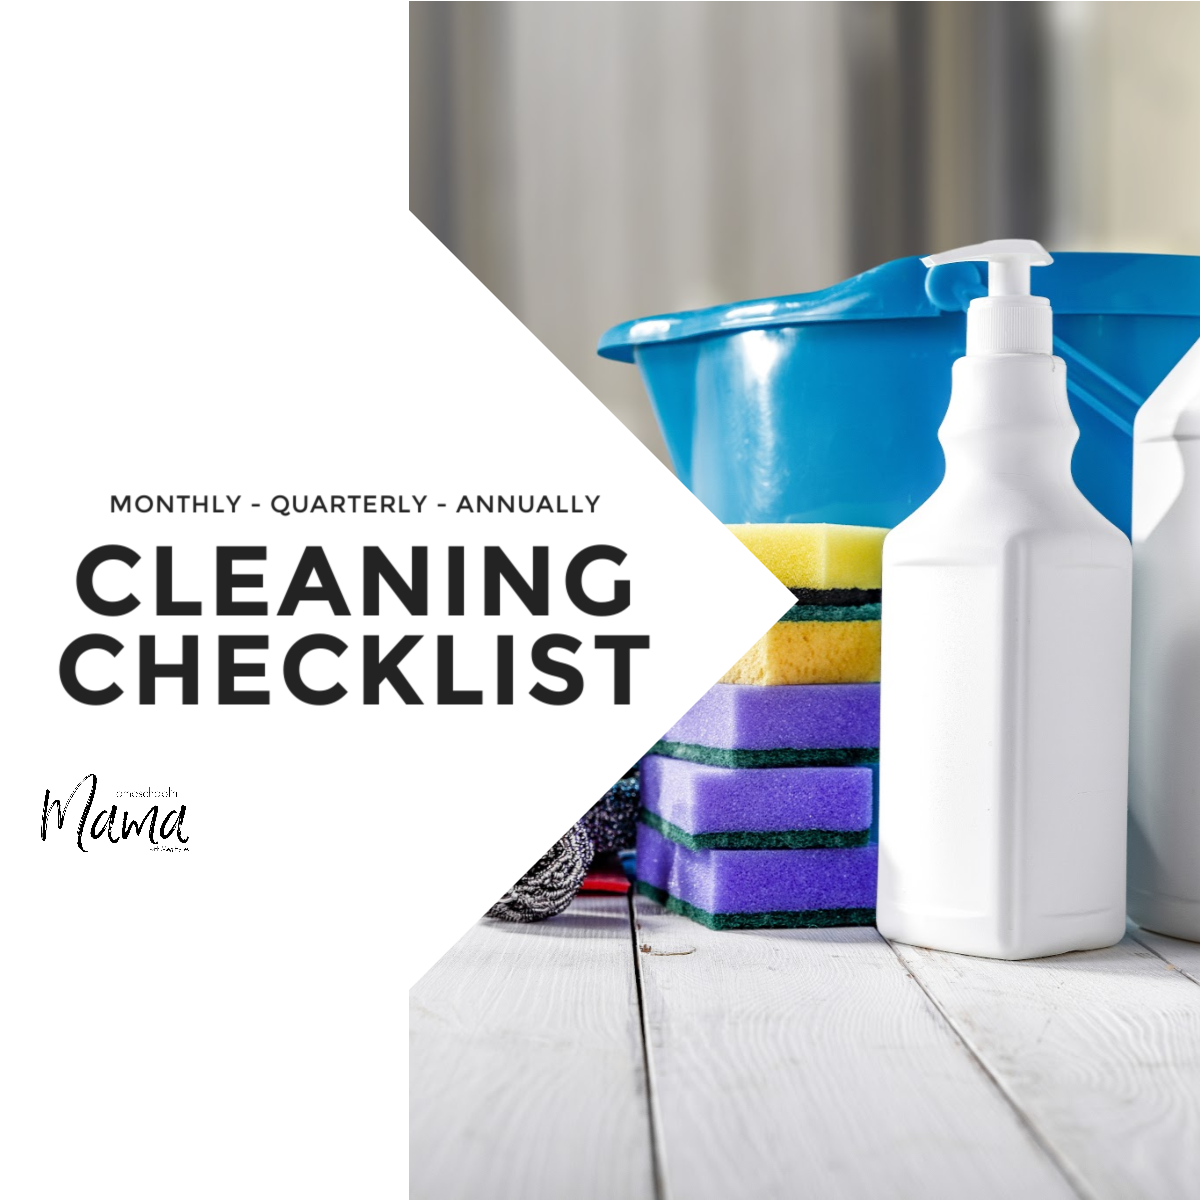 Monthly-Quarterly-Annually Cleaning Checklist